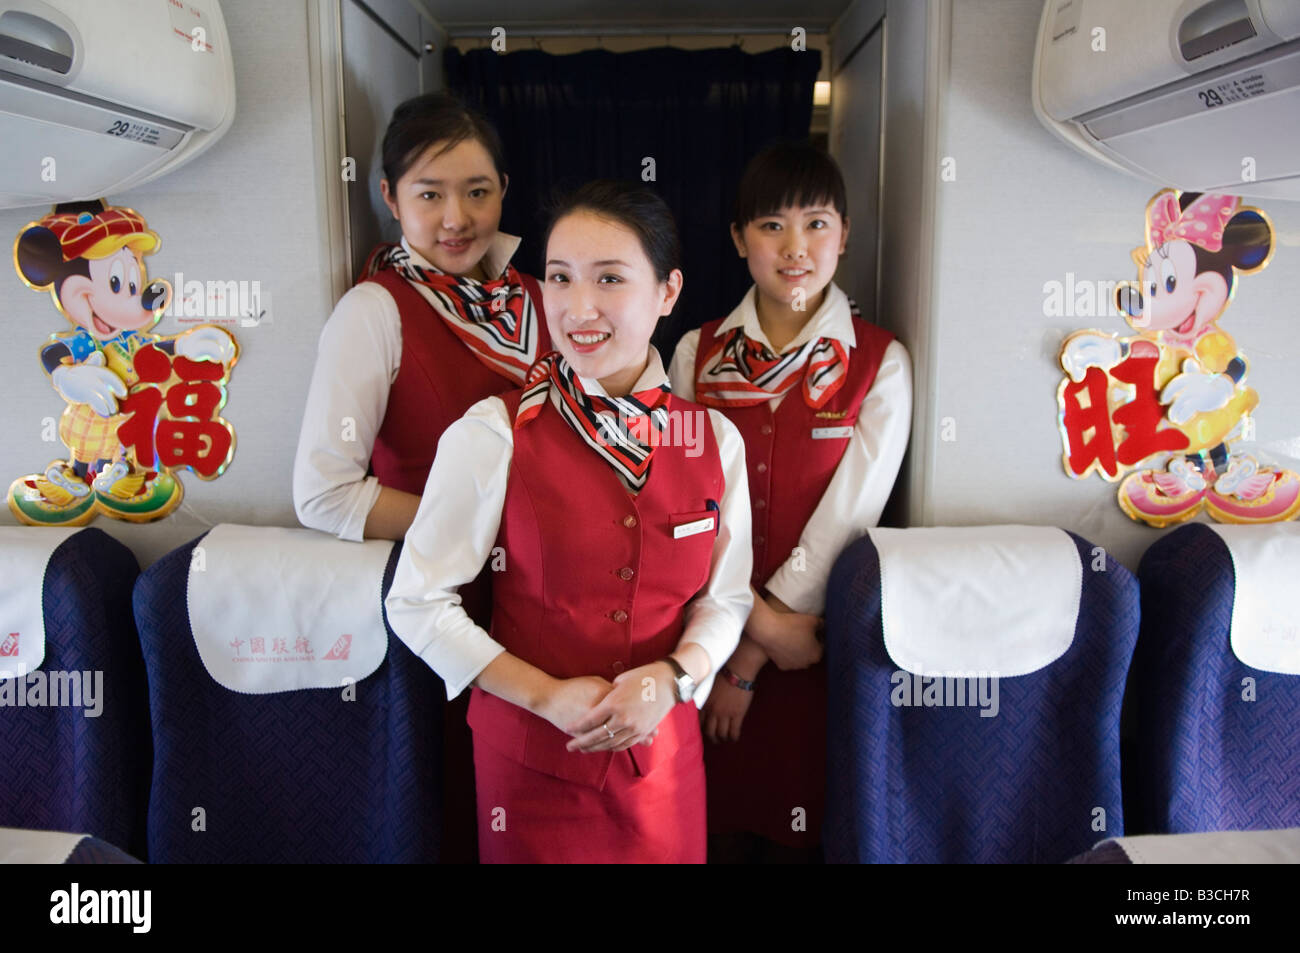 China, Beijing. Chinese New Year - Flight attendants on a New Years Eve flight carrying passengers back to their - Stock Image